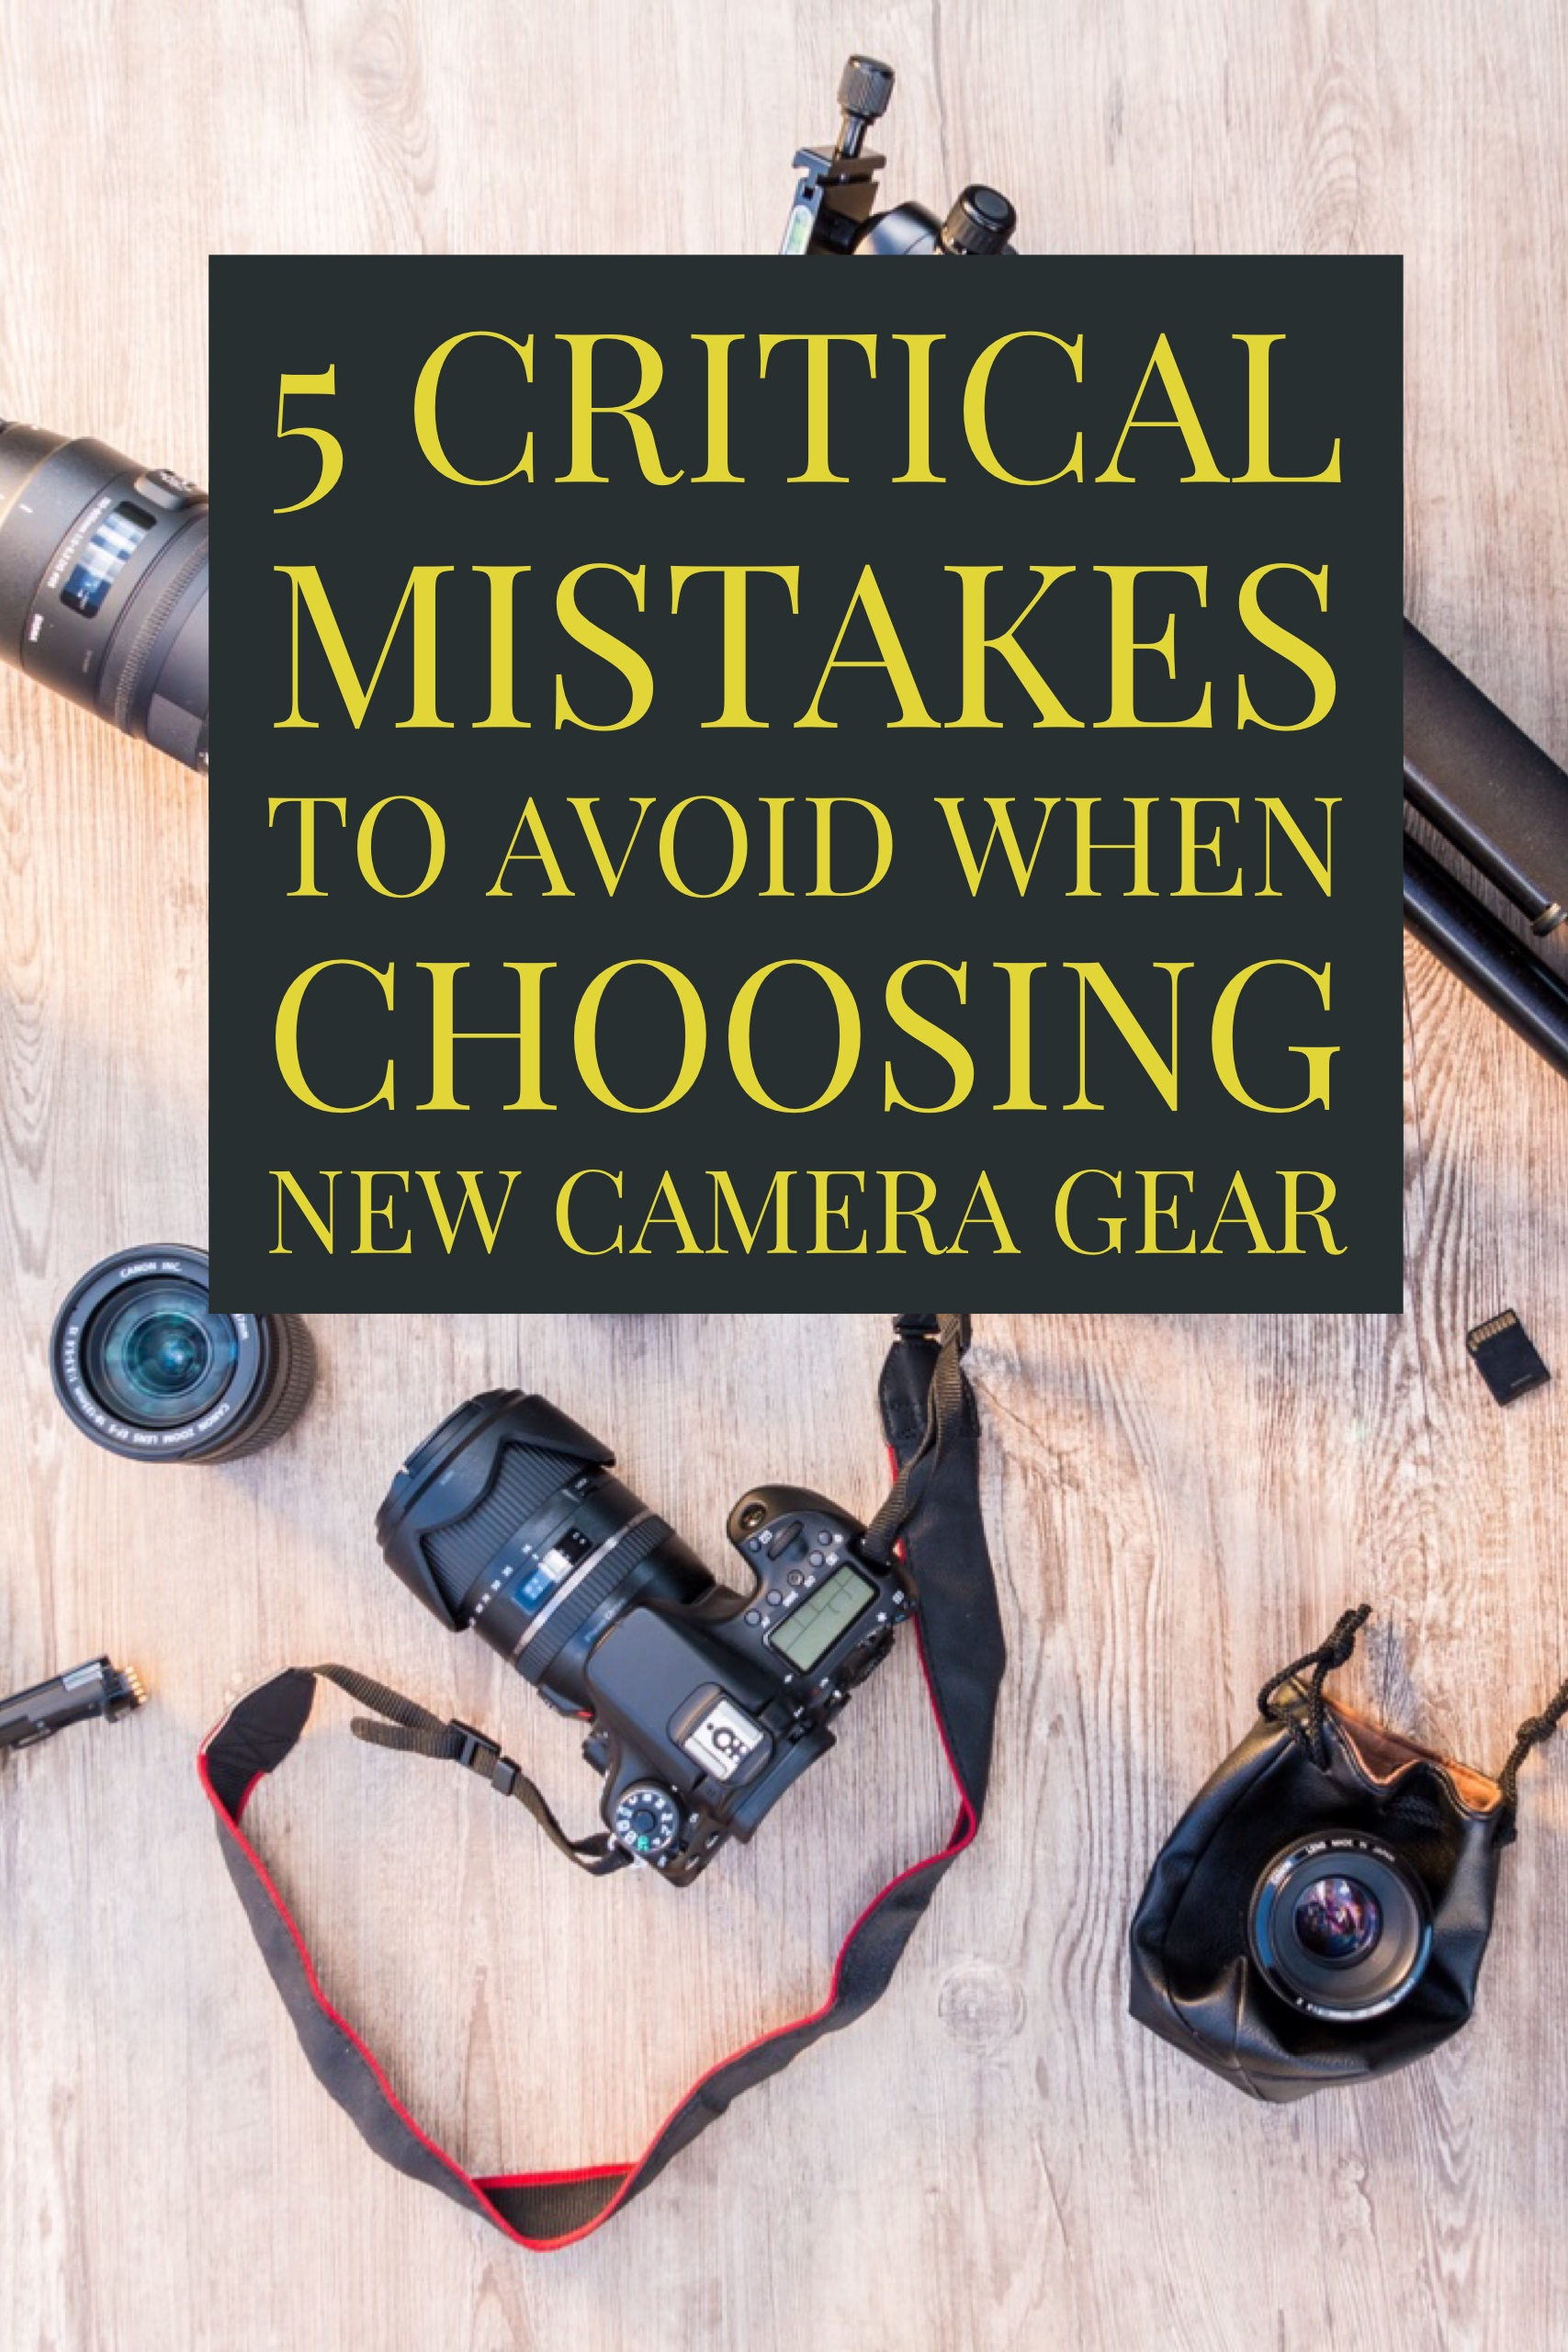 5 Critical Mistakes to Avoid When Buying New Camera Gear